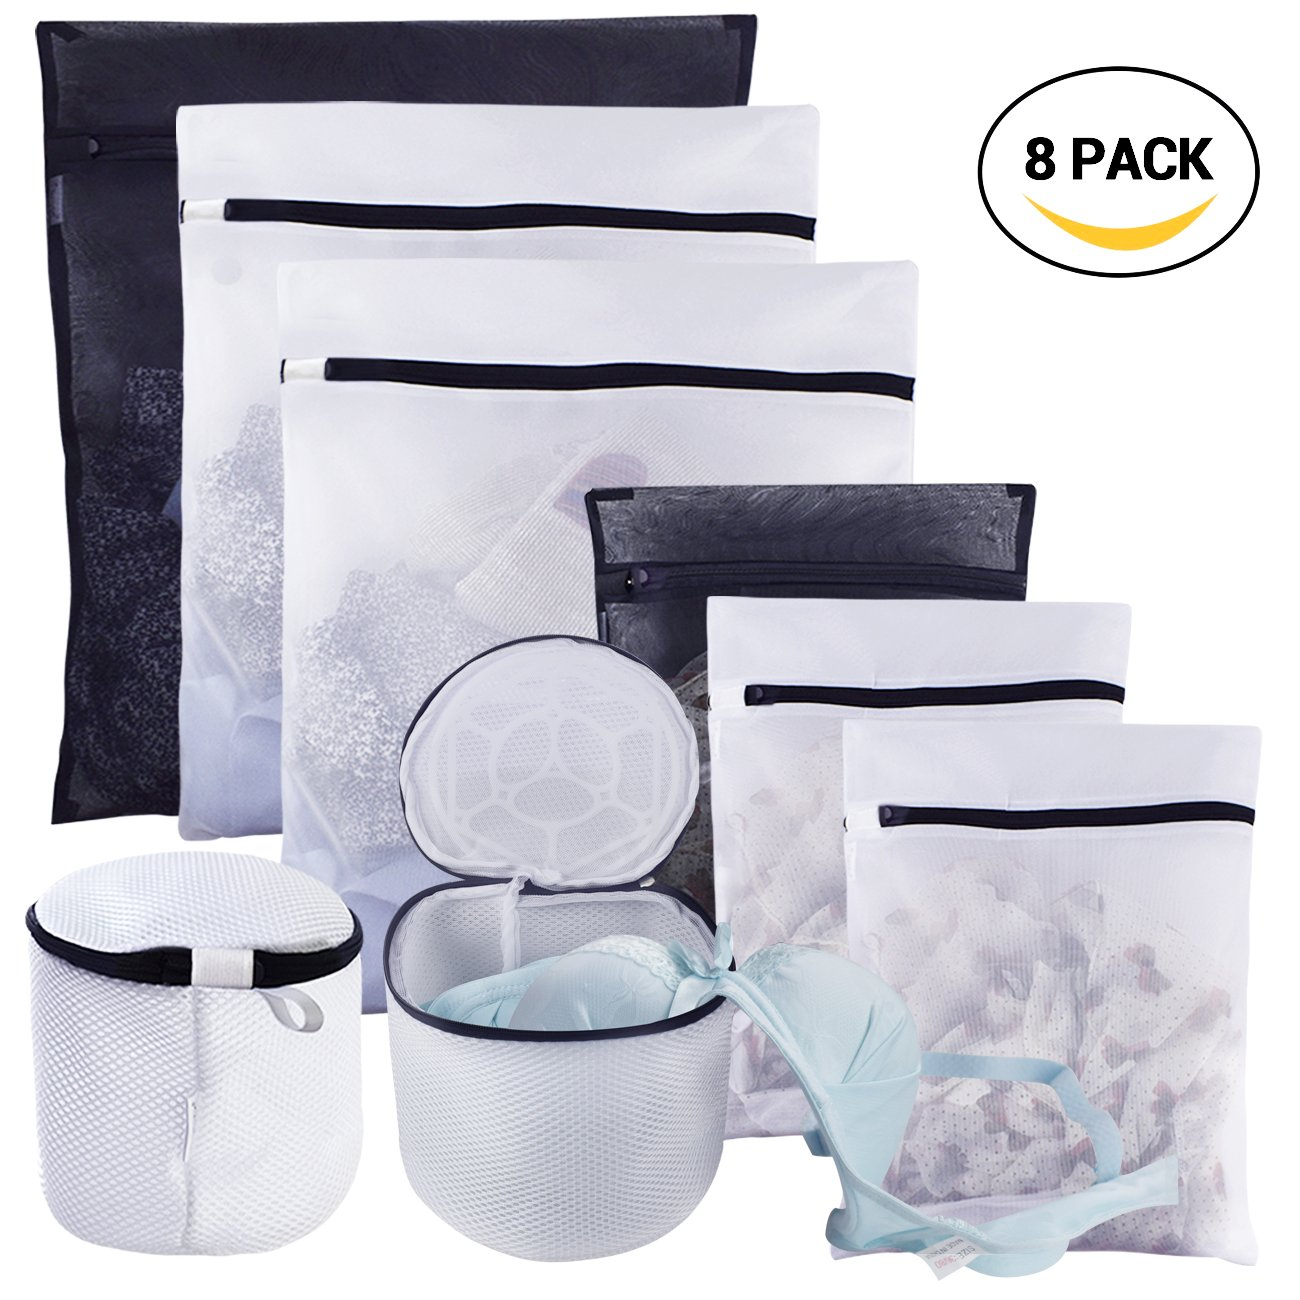 Mesh Laundry Bags, with Two Thicker Bra Wash Bags, Travel Storage Organizer with Premium Zipper, Clothing Washing Bags for Lingerie,Delicate, Laundry, Hosiery, Stocking, Underwear Pack of 8 homyfort